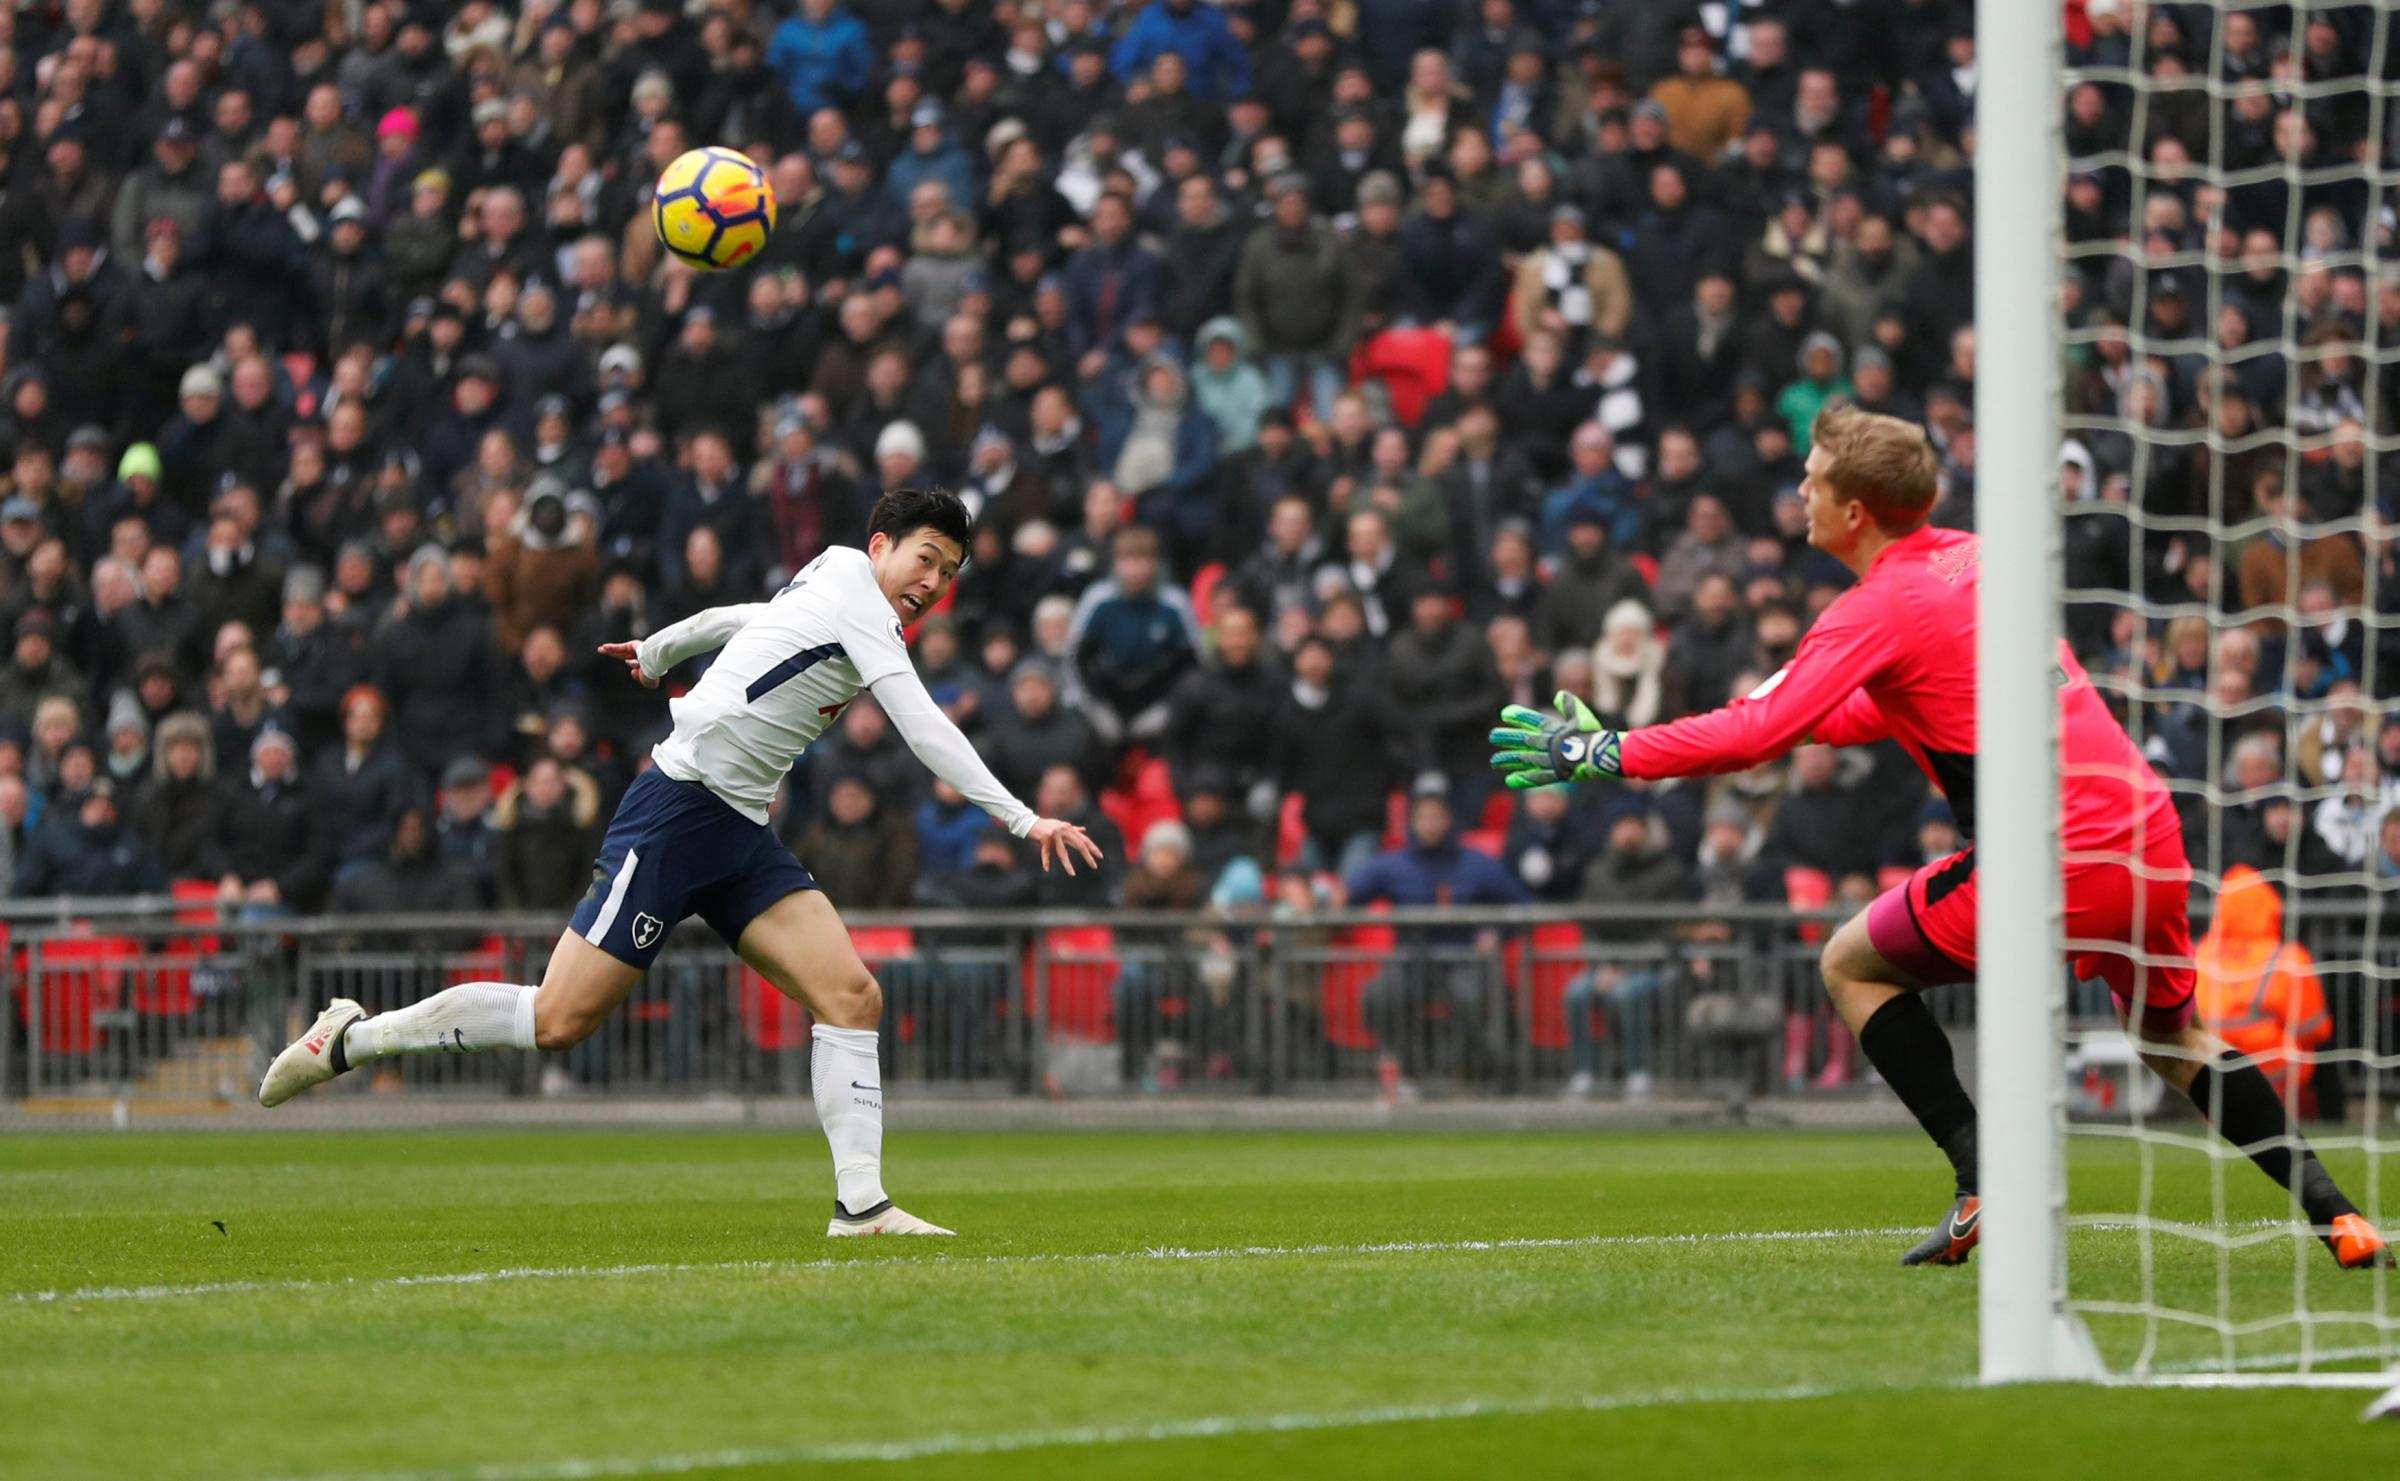 Son Heung-min scores his second goal. Picture: Action Images